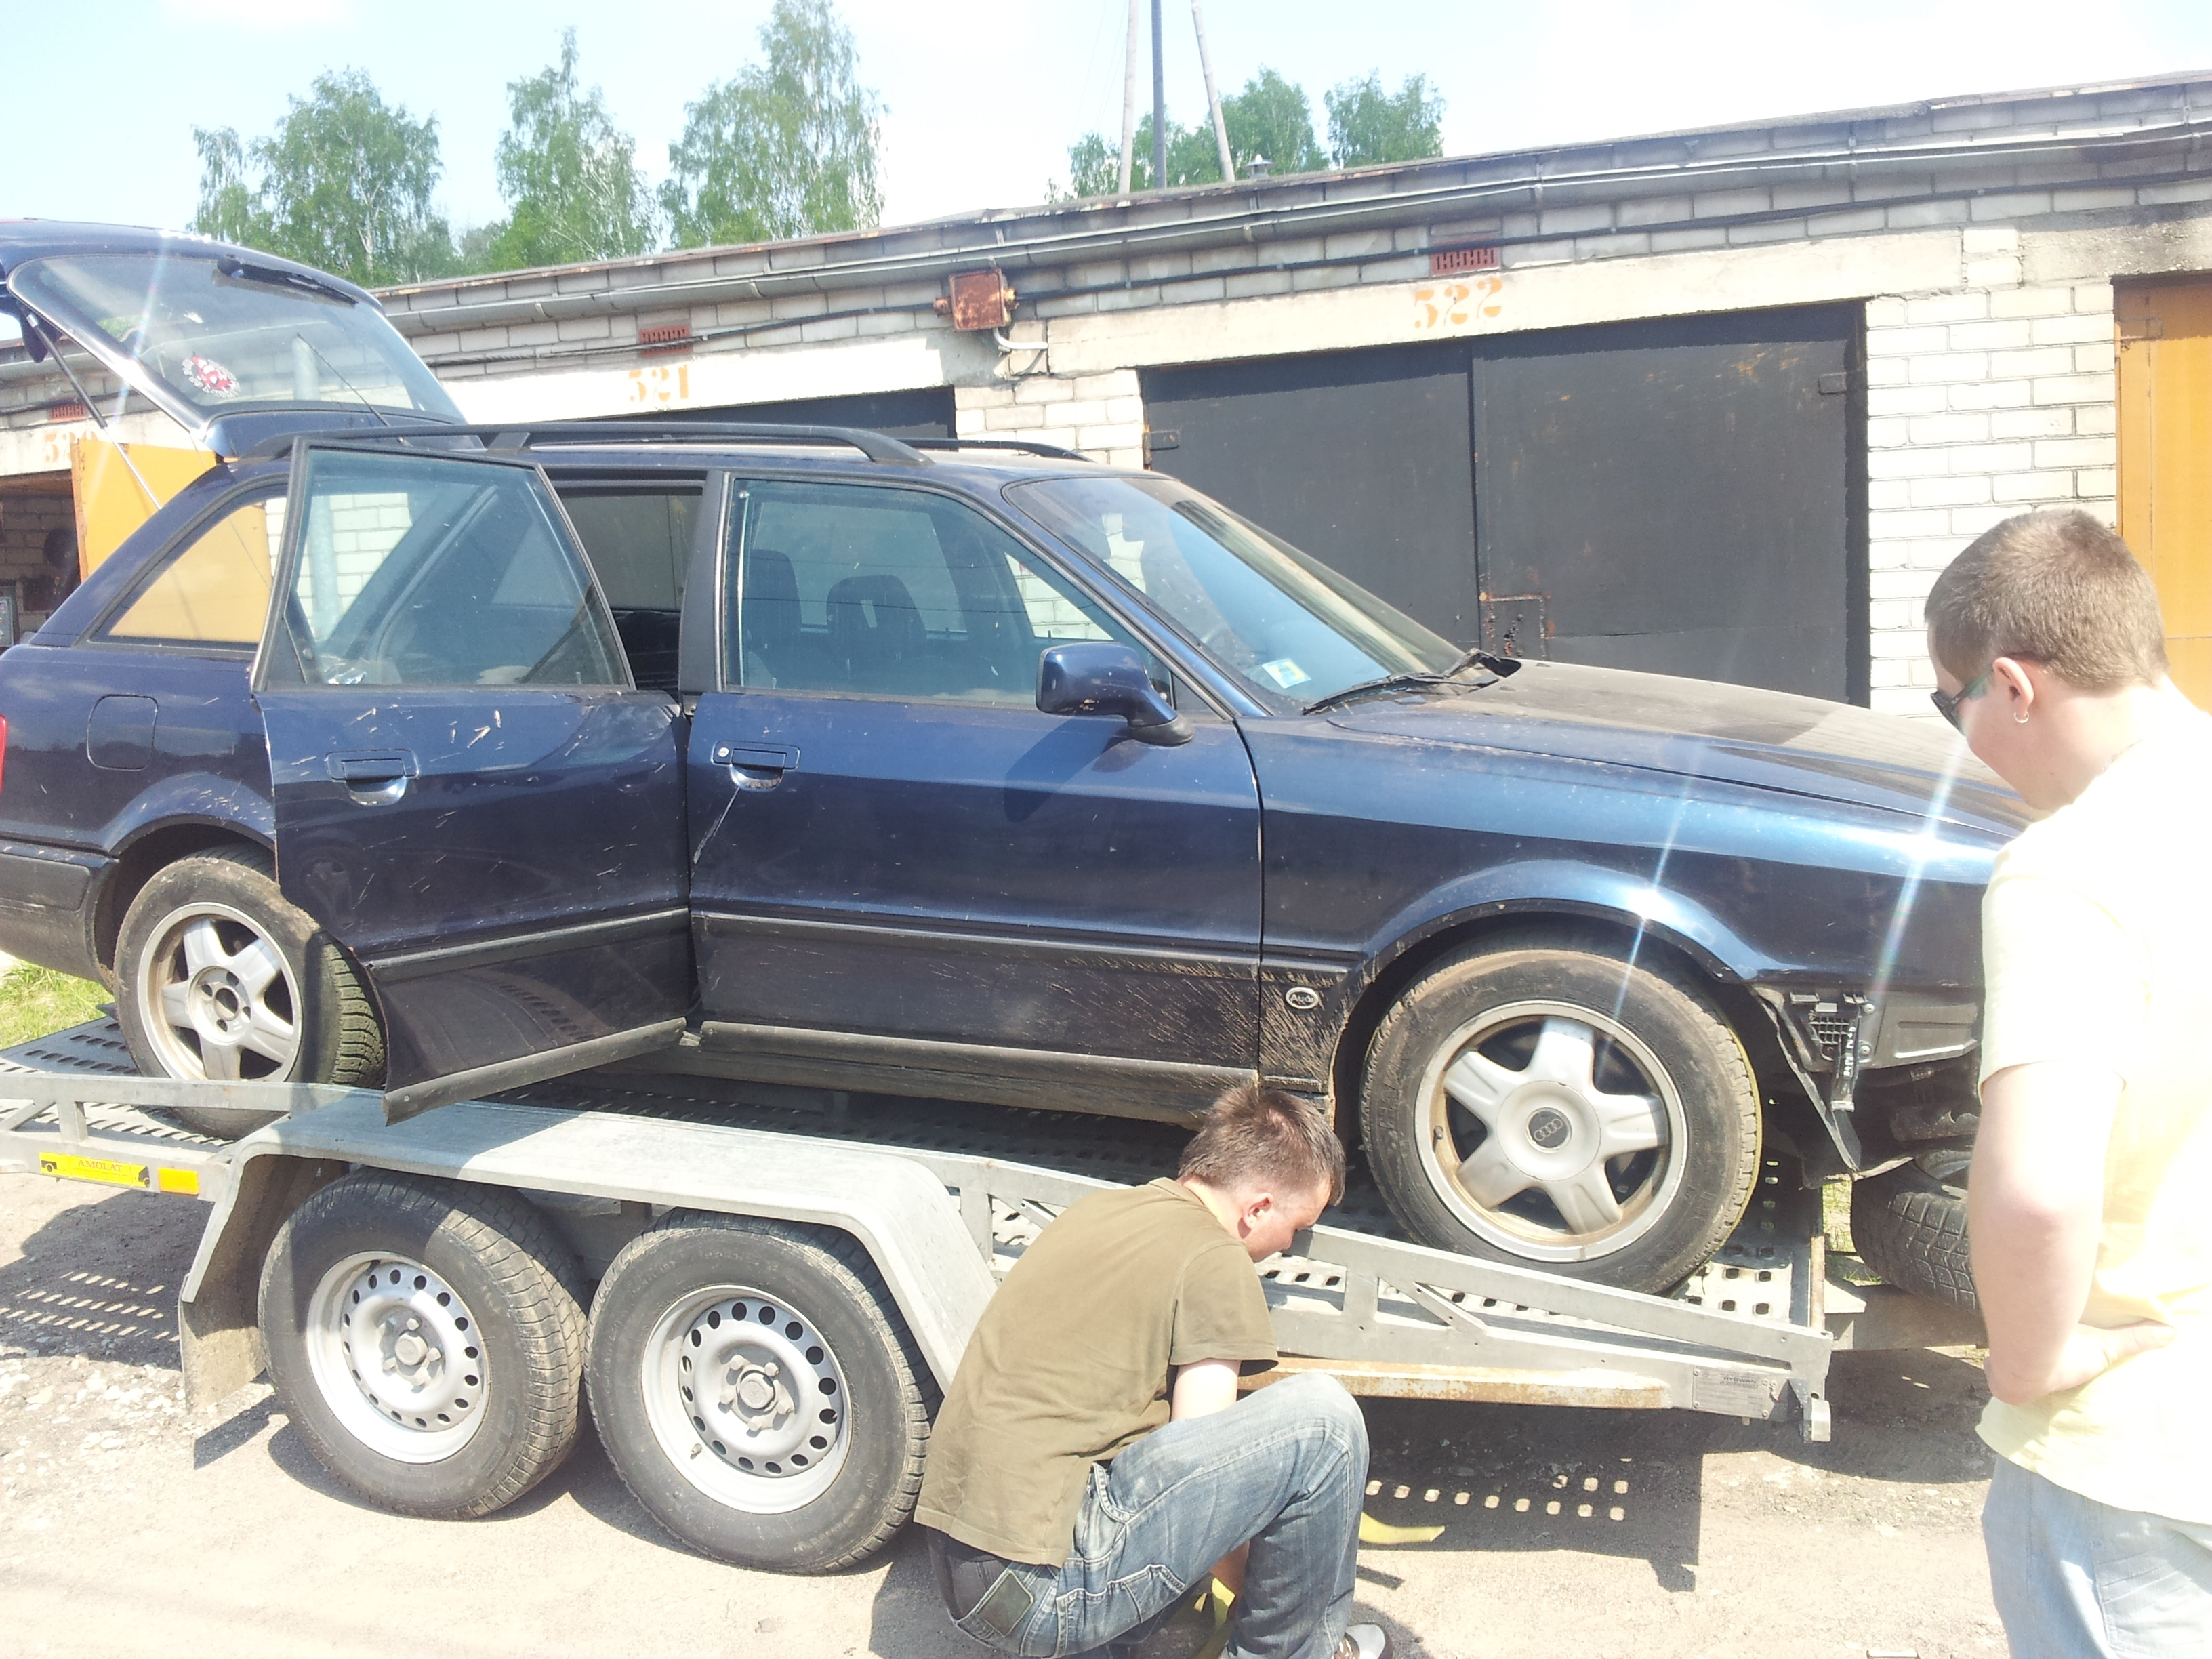 Audi 80 Avant Quattro 19 Tdi Project S2forum The Audi S2 Community